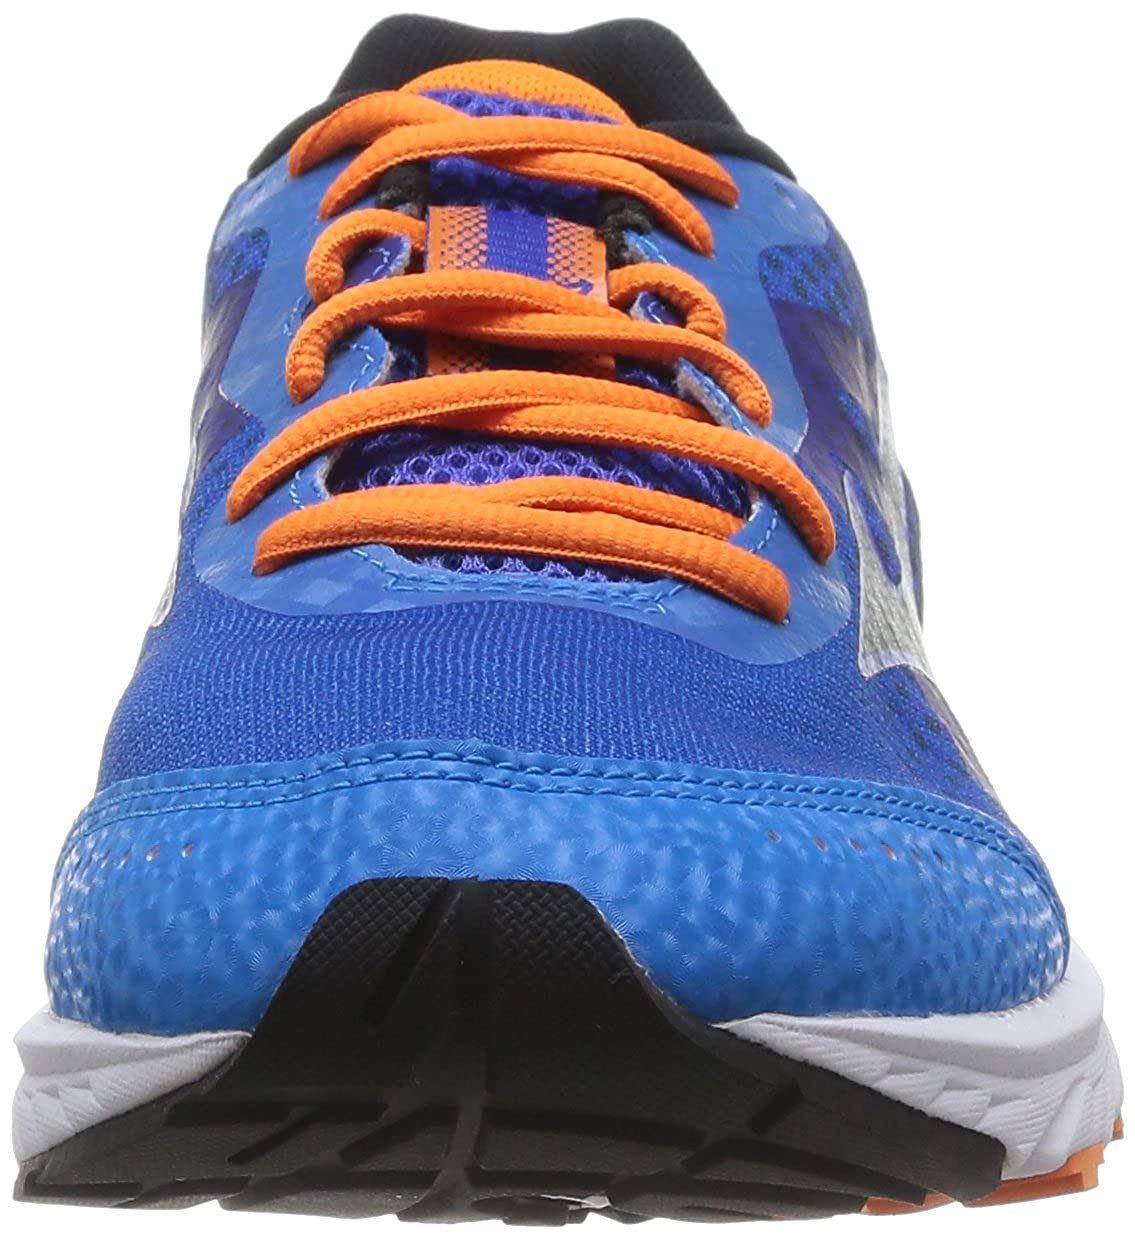 59948ce4206 WAVE ELEVATION M BLE - Chaussures Running Homme Mizuno